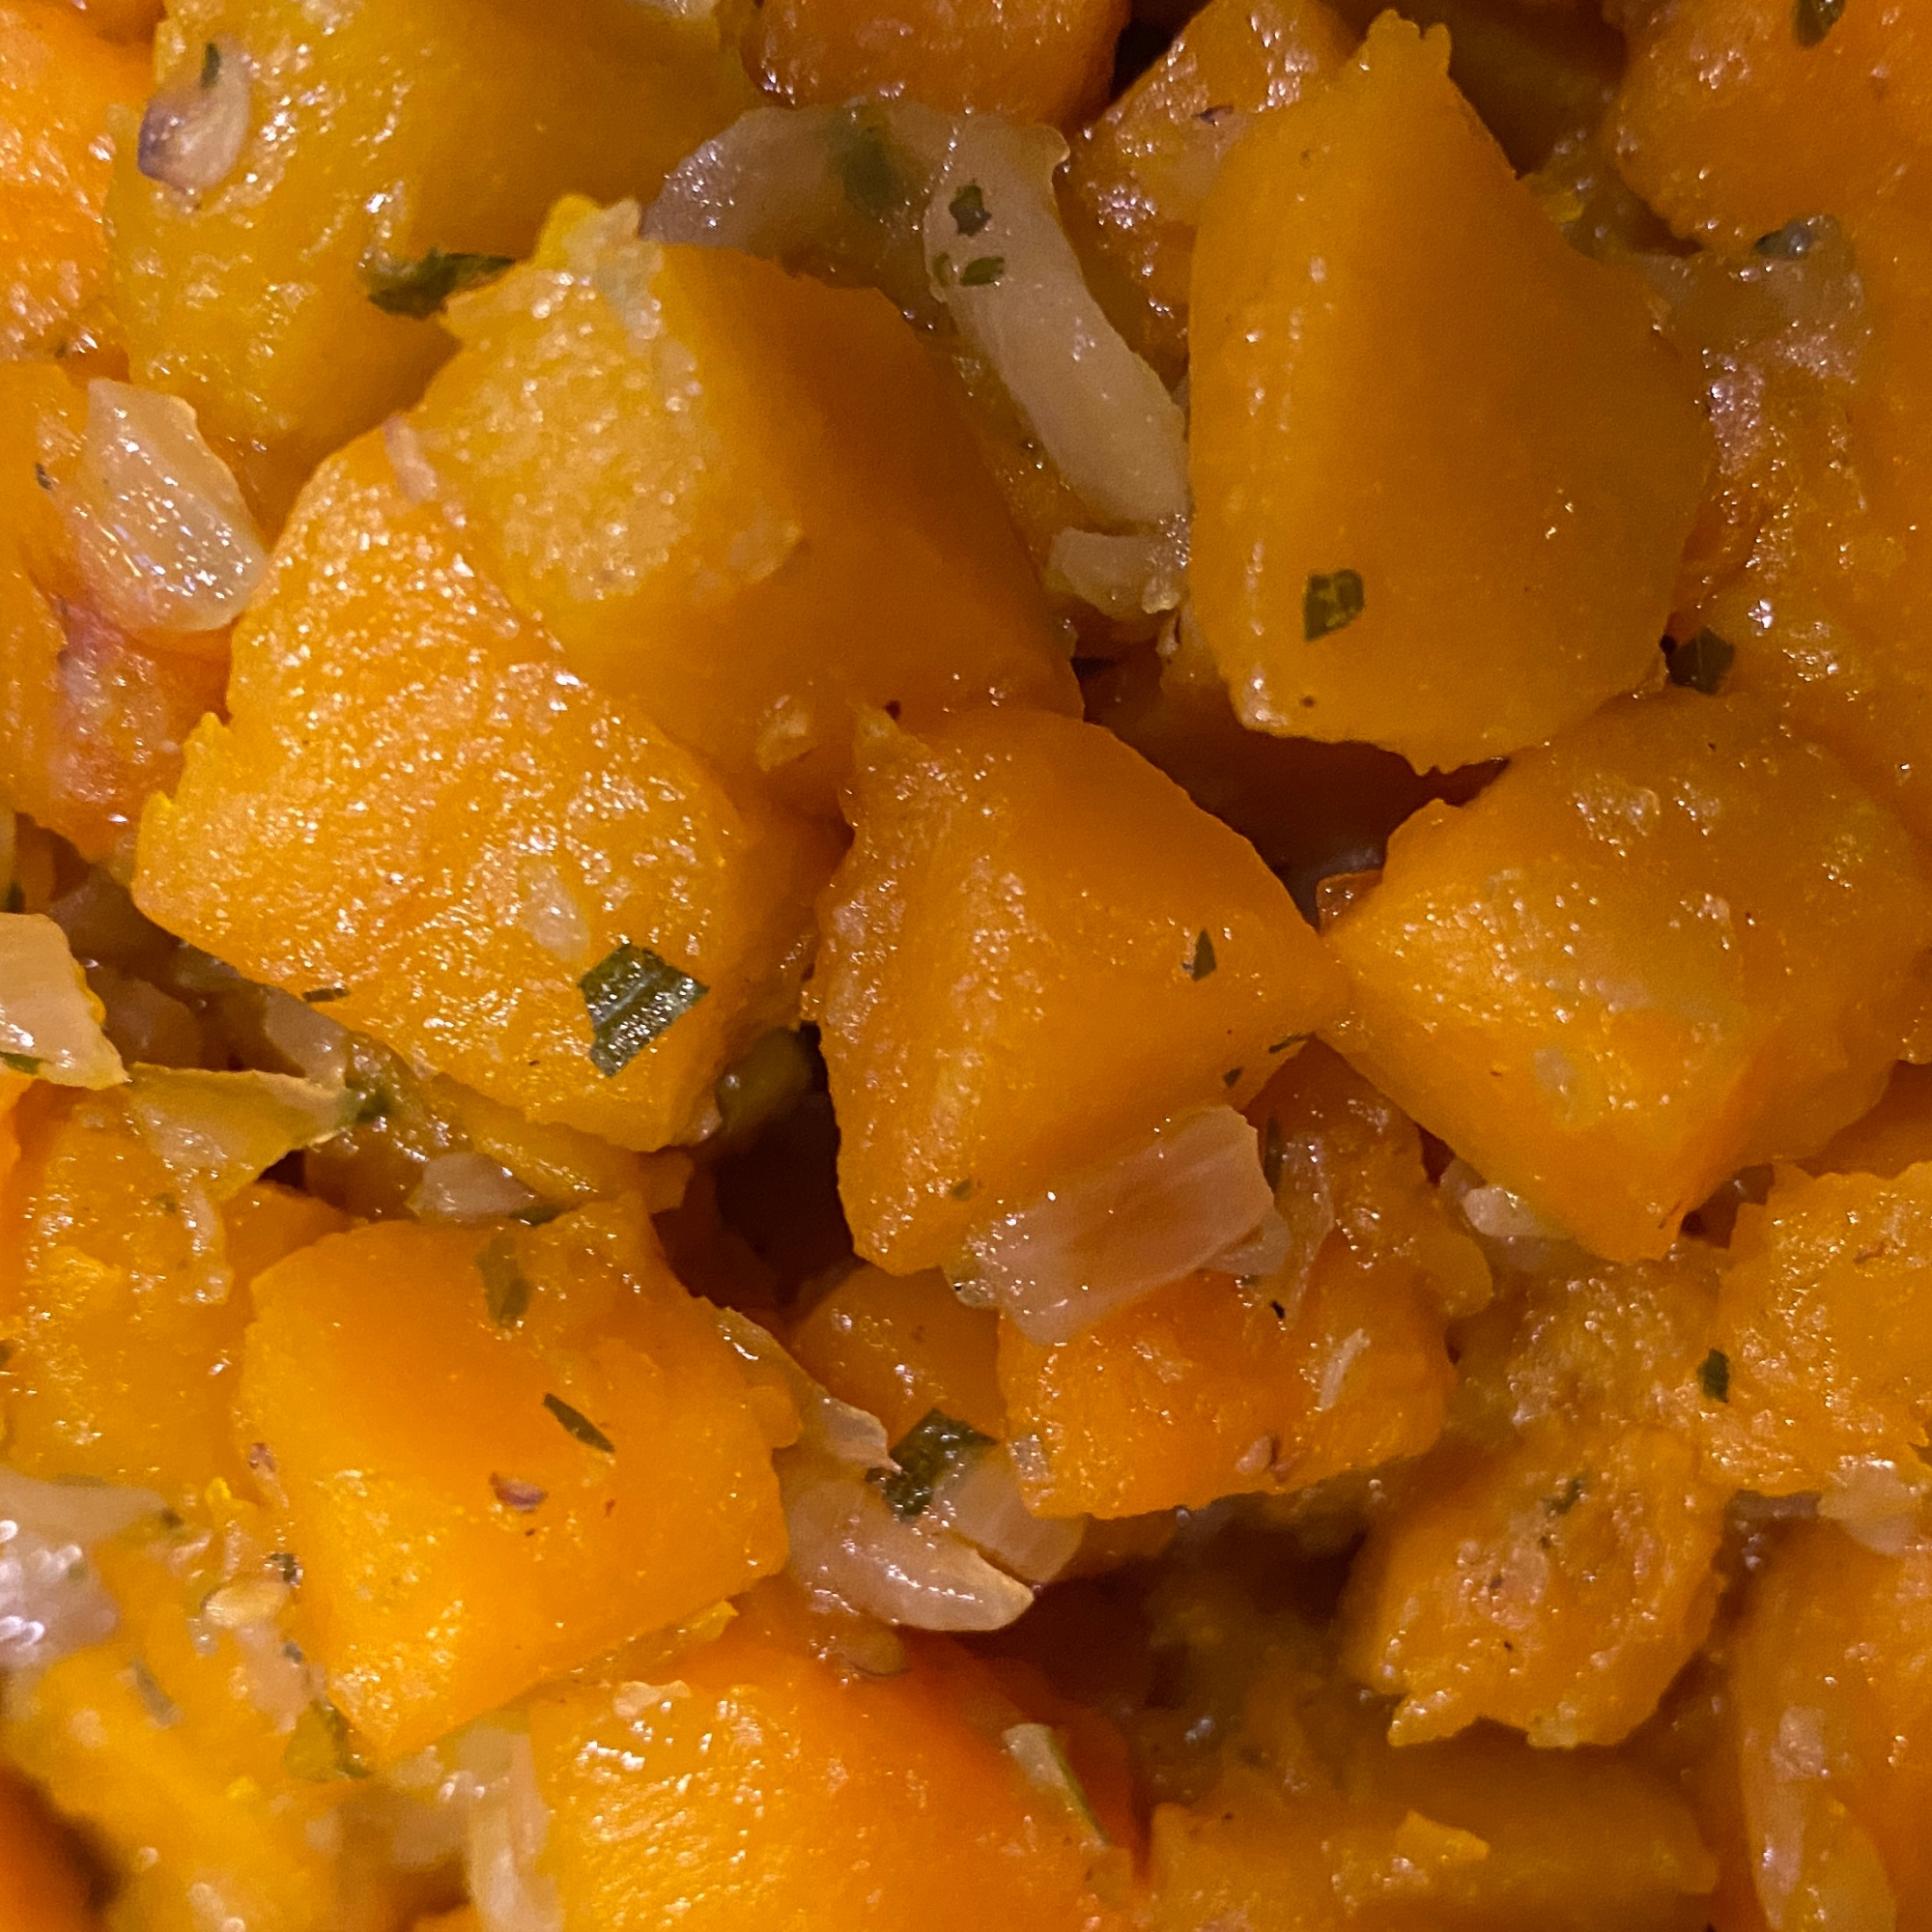 Close Up: Pumpkin cooked in onion and herb blend